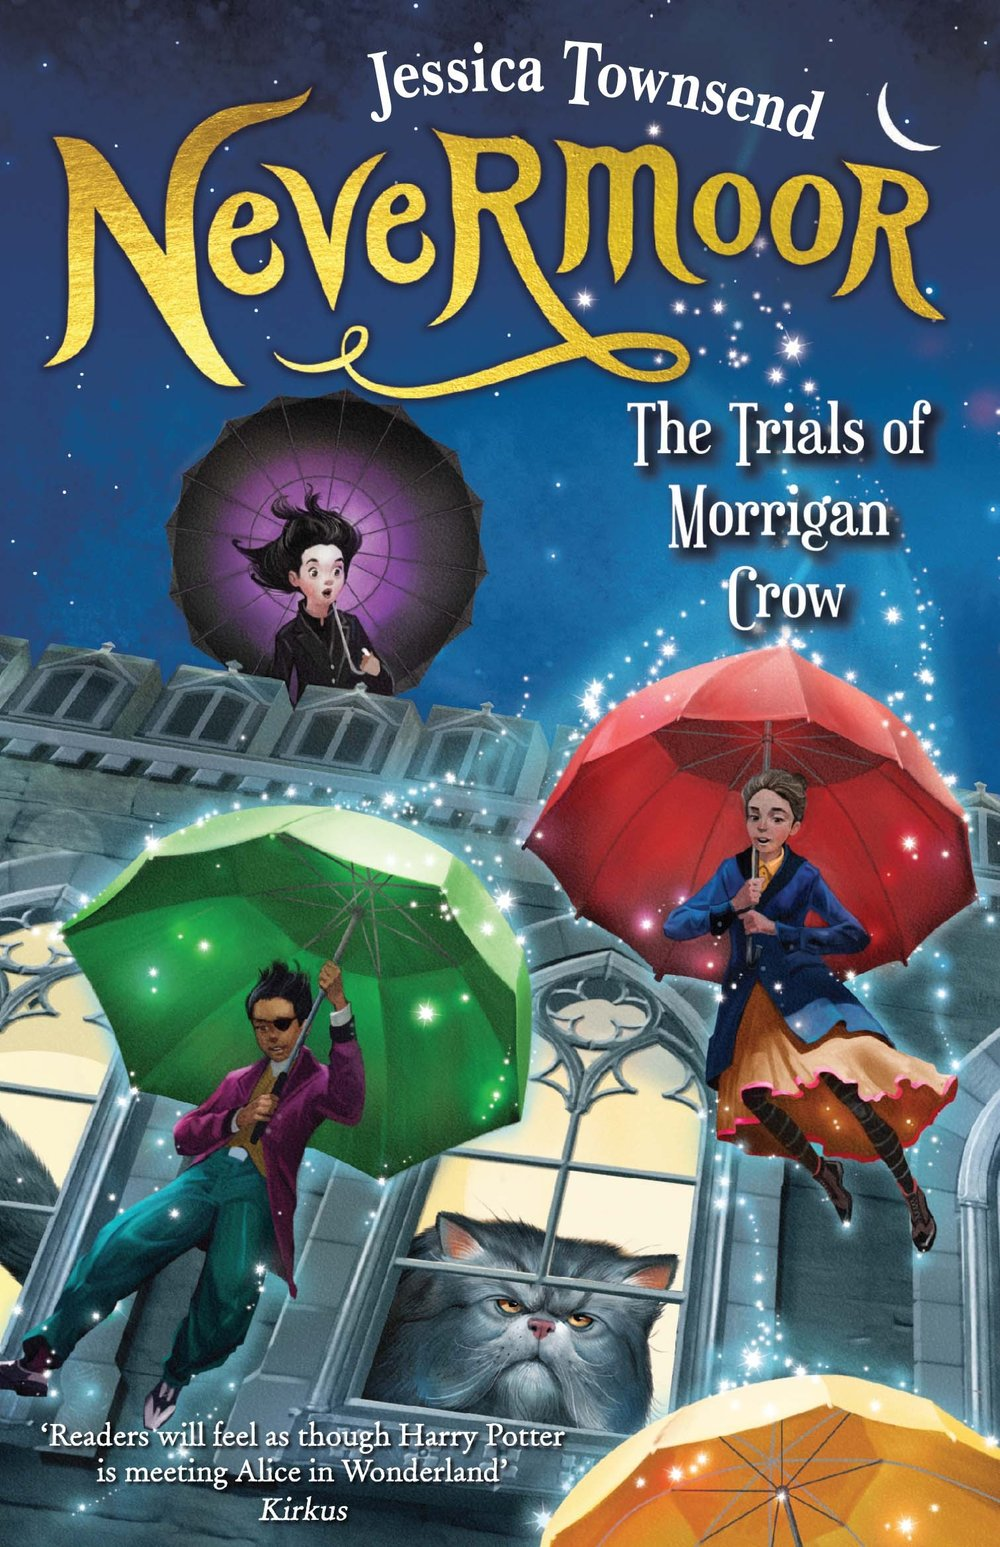 NEVERMOOR COVER.JPG